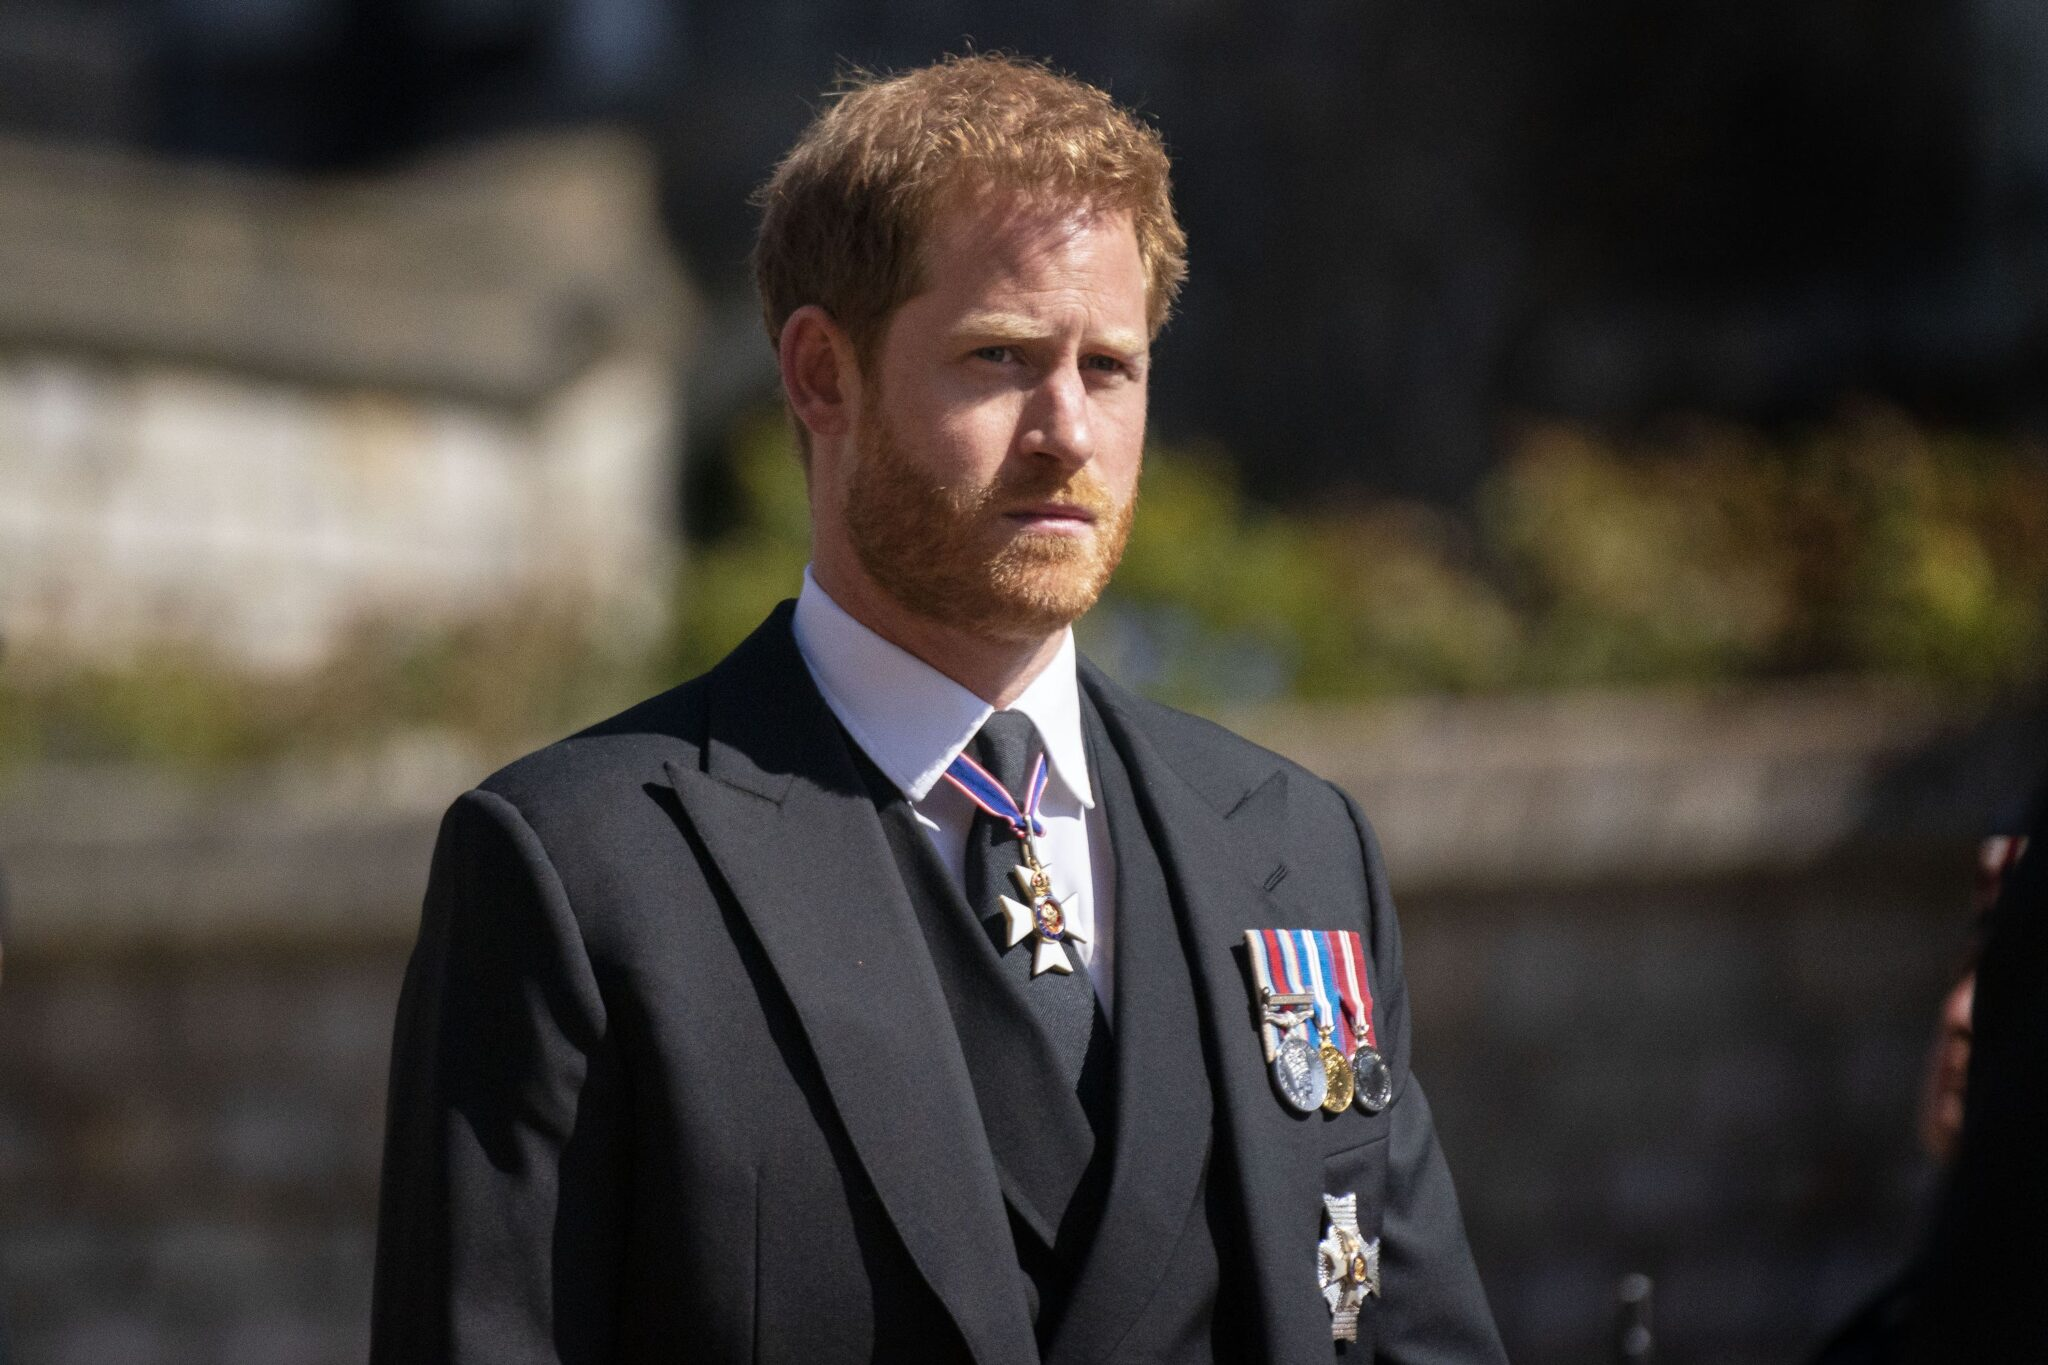 Prince Harry Drinking And Mental Health